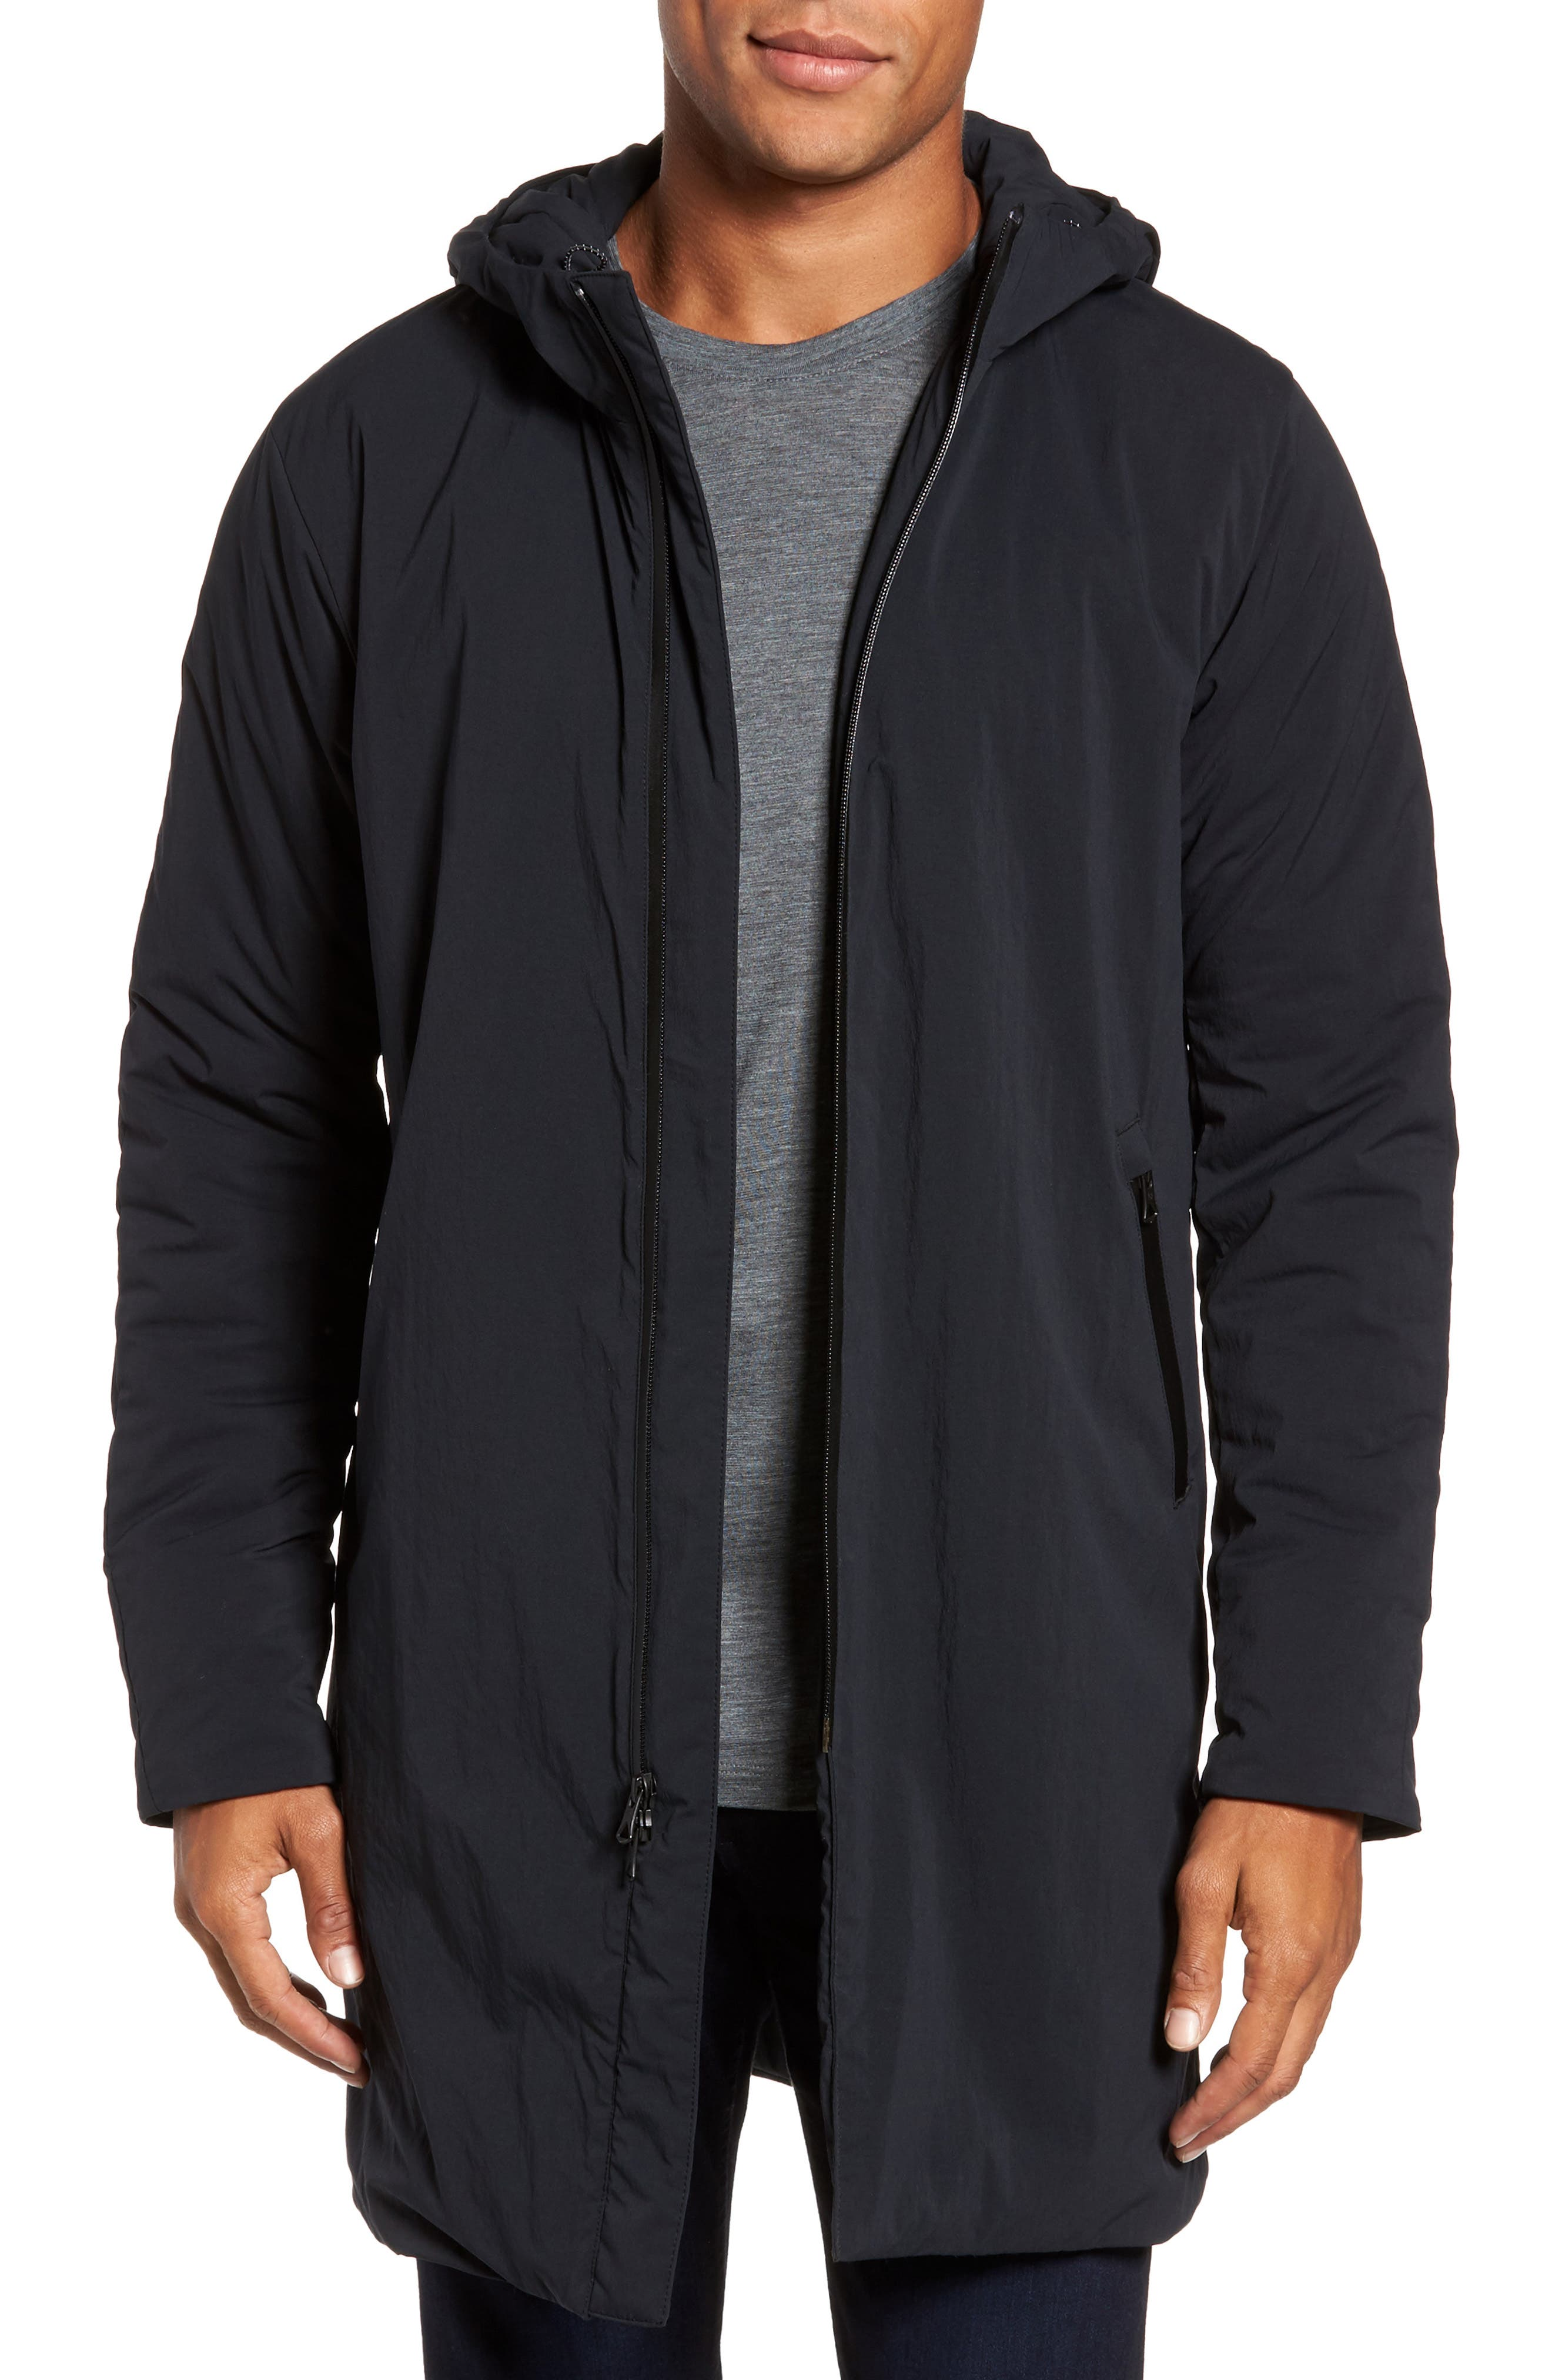 Insulated Trim Sideline Jacket,                         Main,                         color, 001